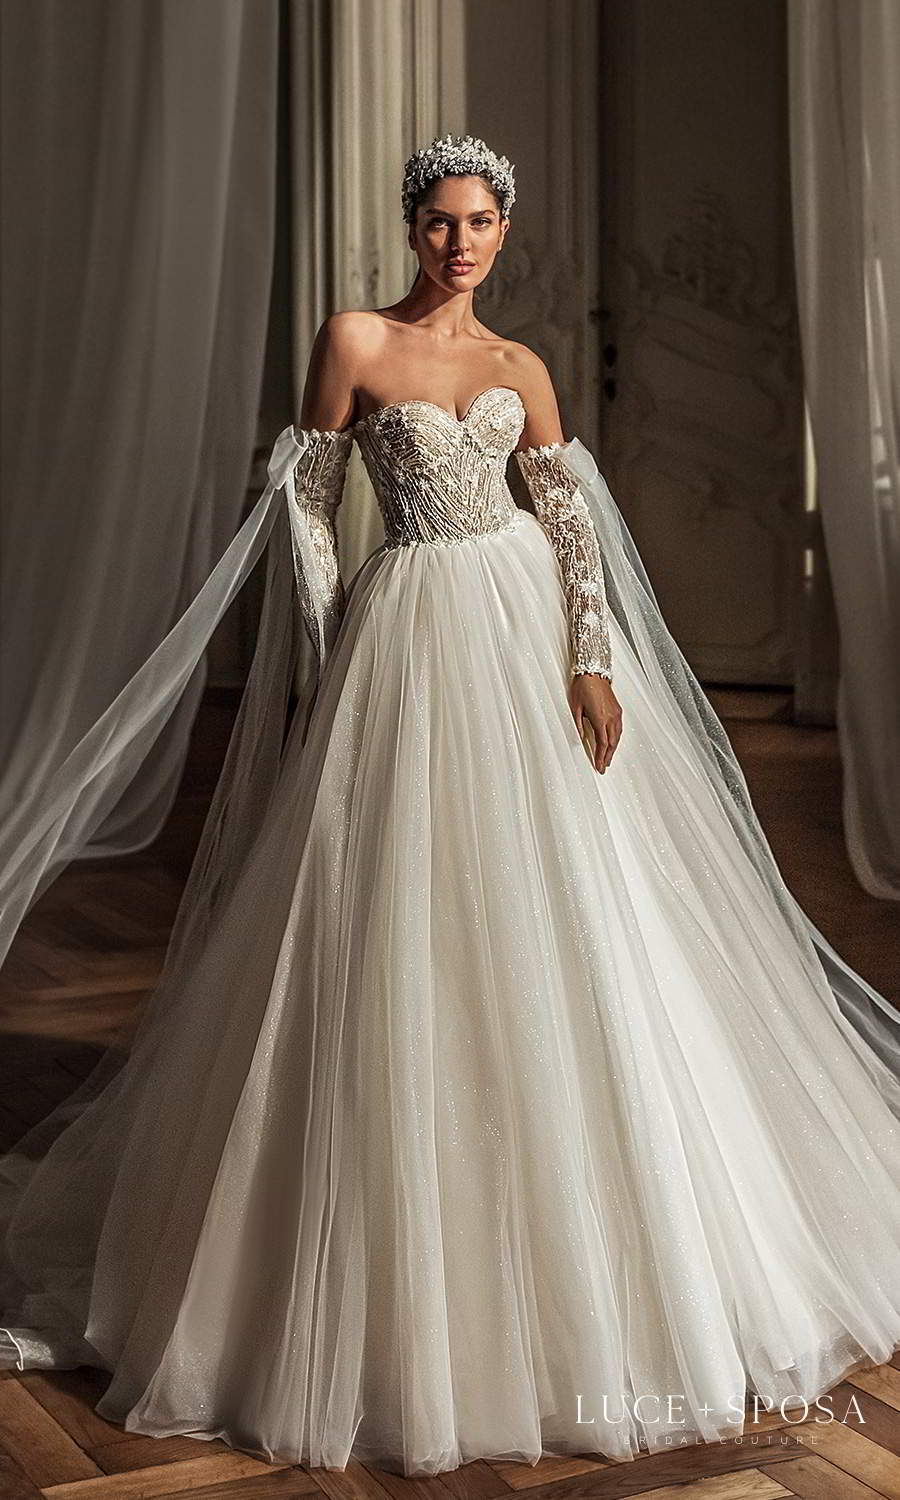 luce sposa 2021 shades of couture bridal long detached sleeves strapless sweetheart neckline heavily embellished bodice a line ball gown wedding dress chapel train (emery) mv